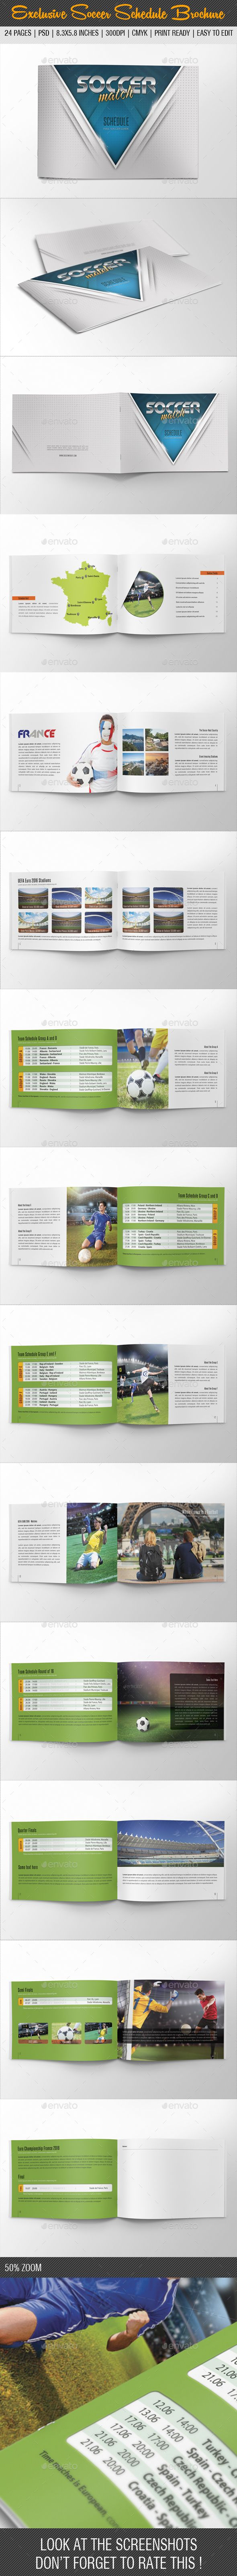 Exclusive Soccer Schedule France 2016 Brochure